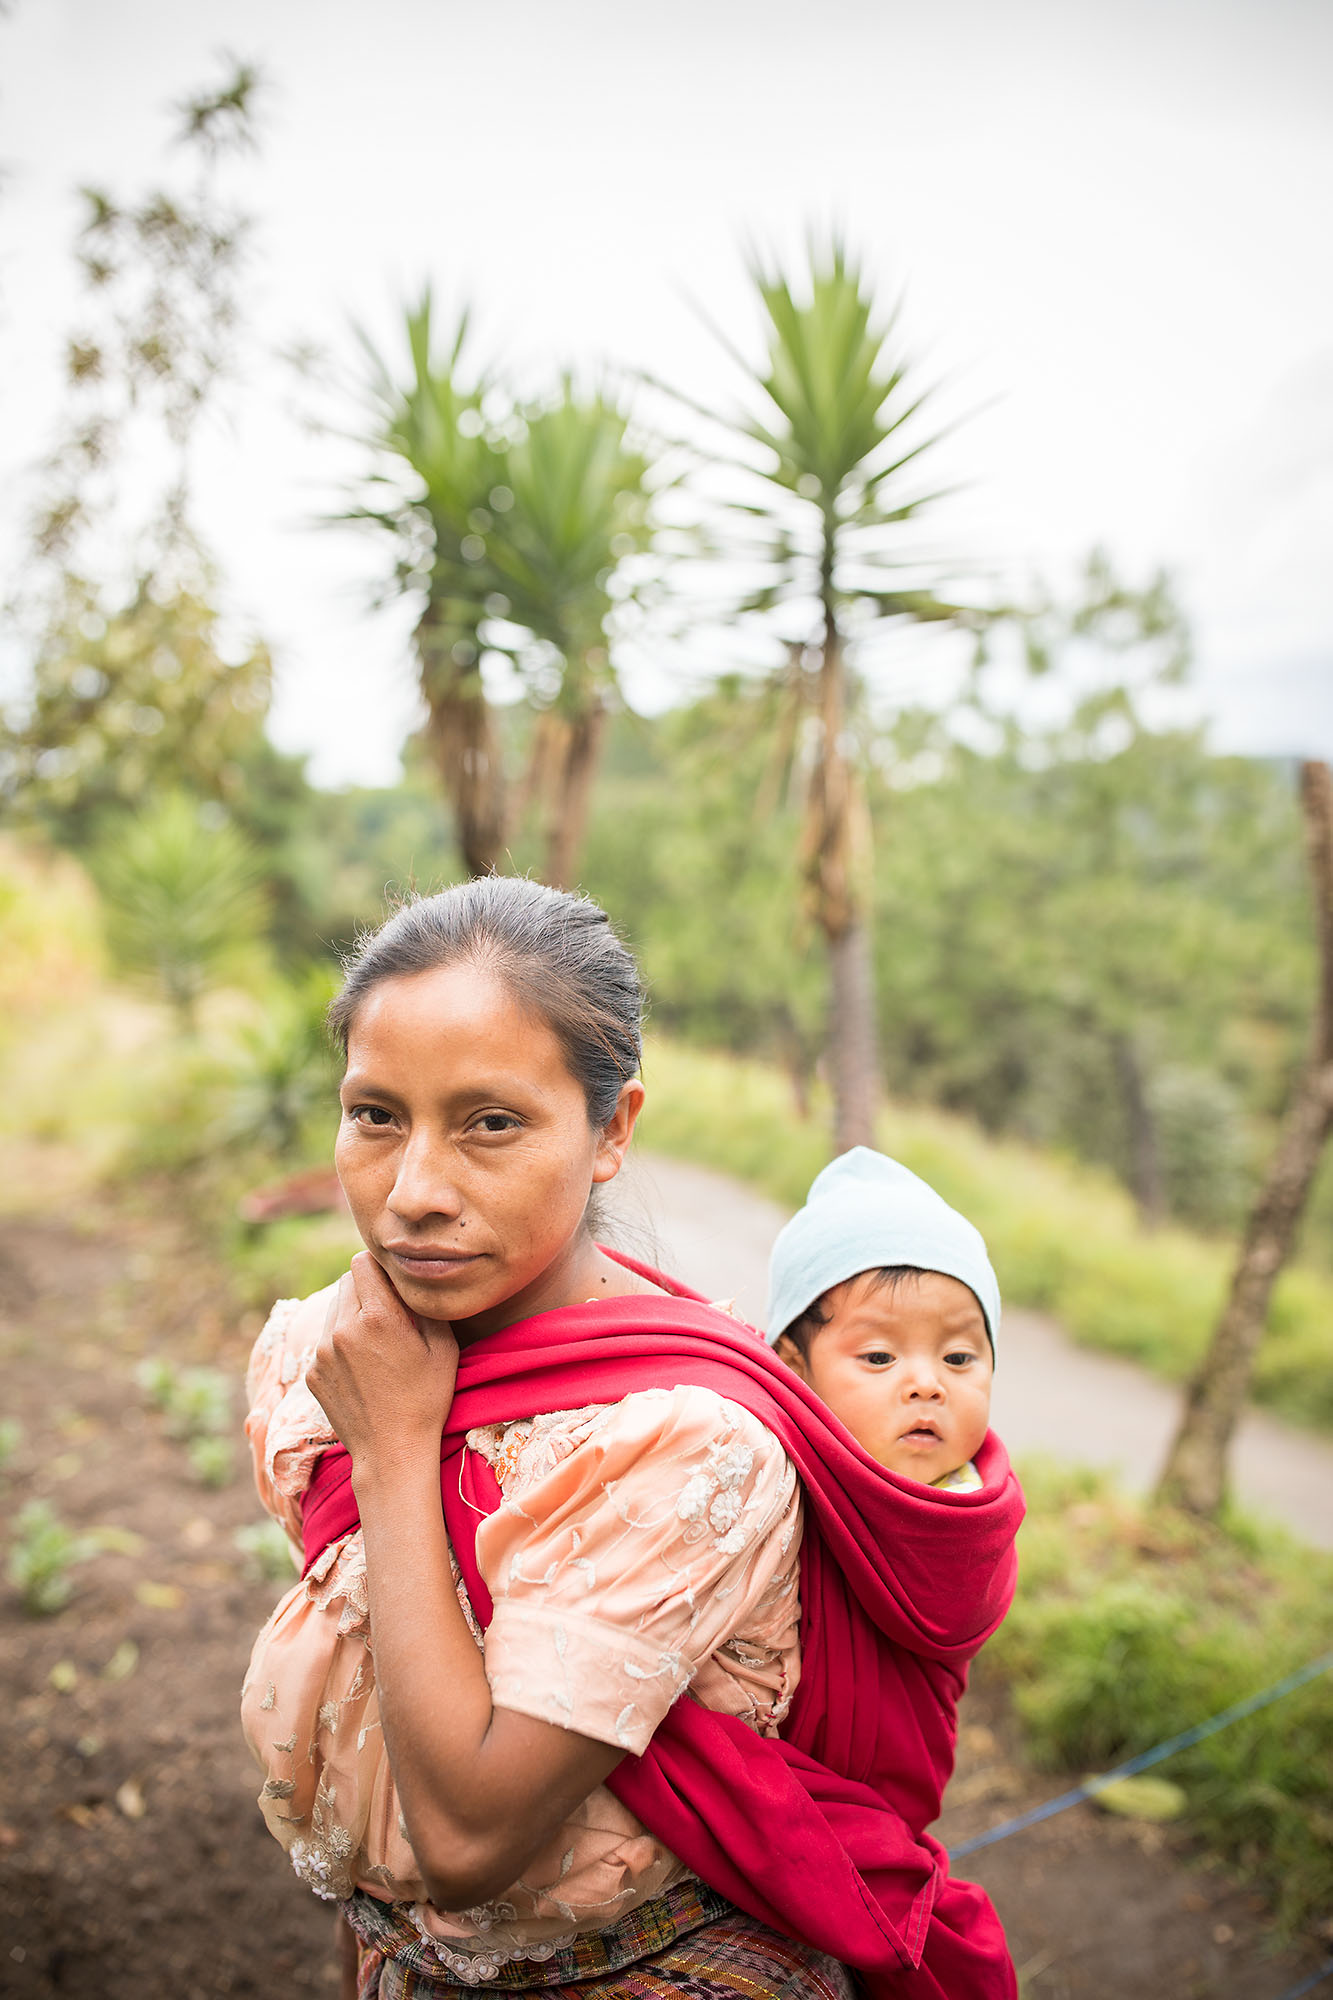 A mother carries her son on her back in the highlands of Guatemala.